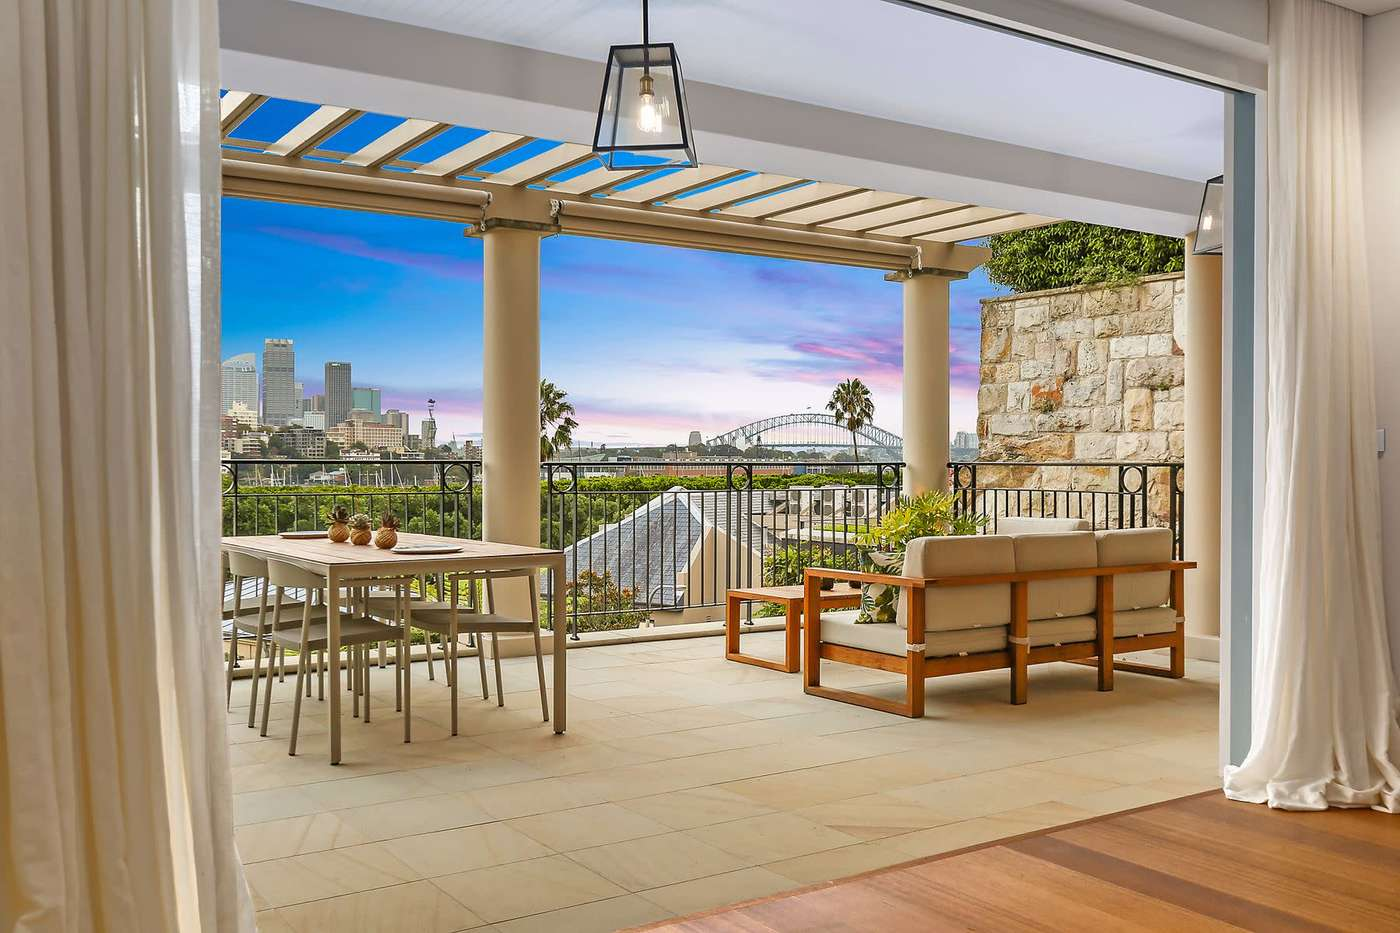 Main view of Homely apartment listing, Address available on request, Darling Point, NSW 2027